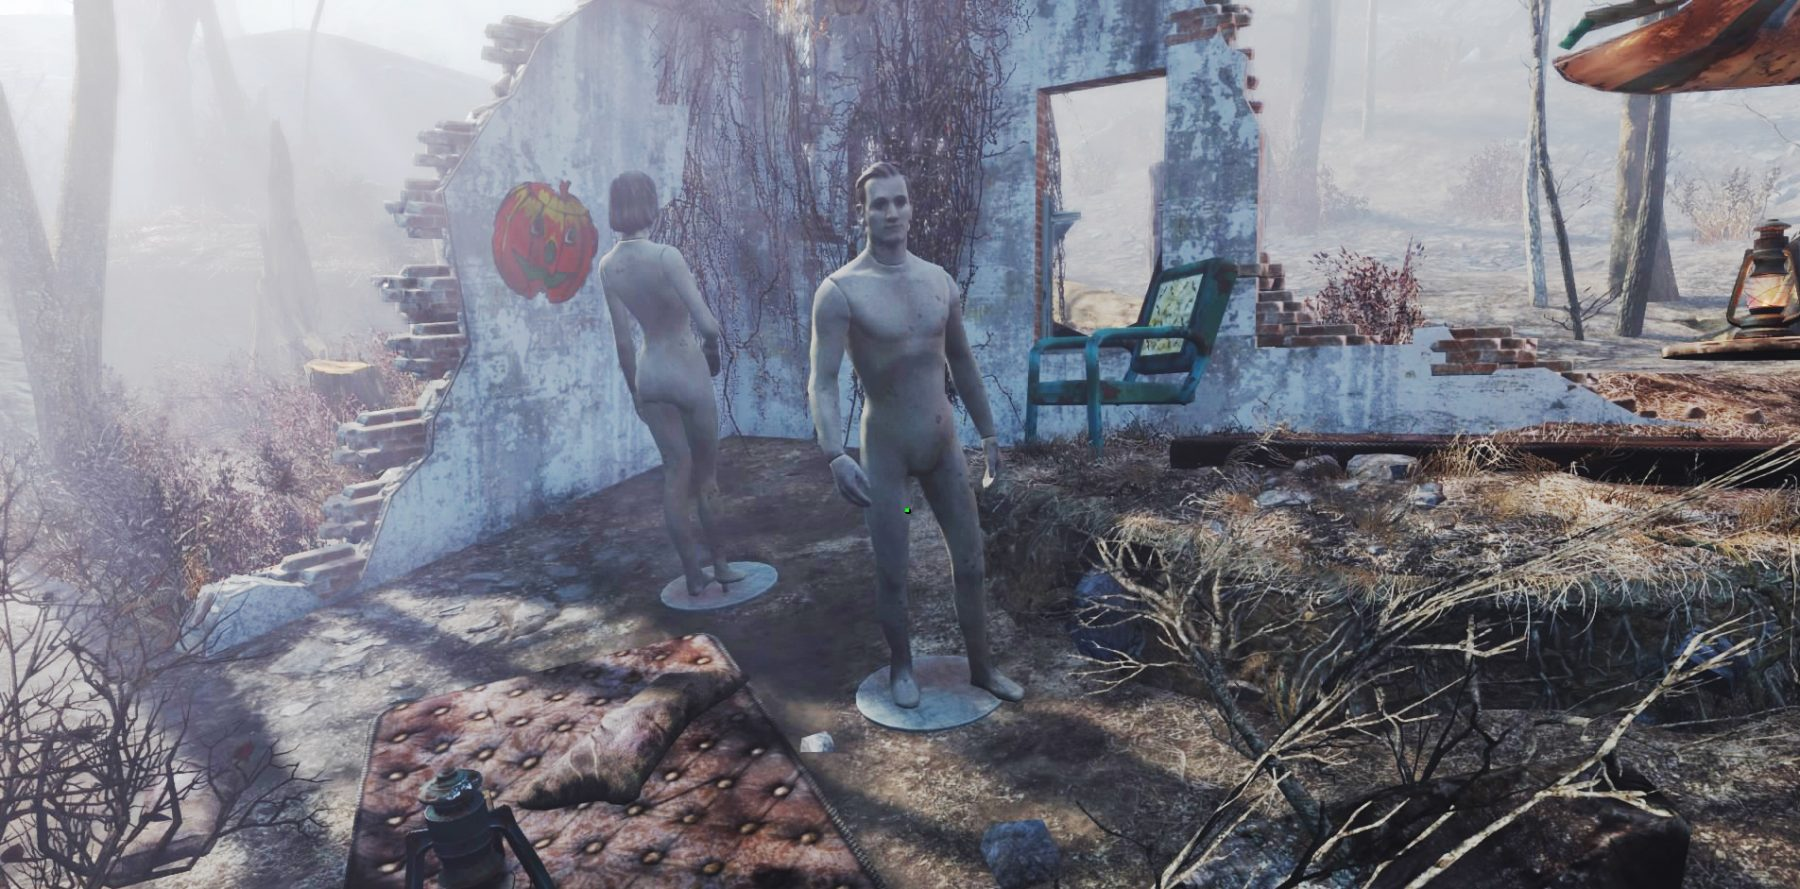 Fallout 4 and androids